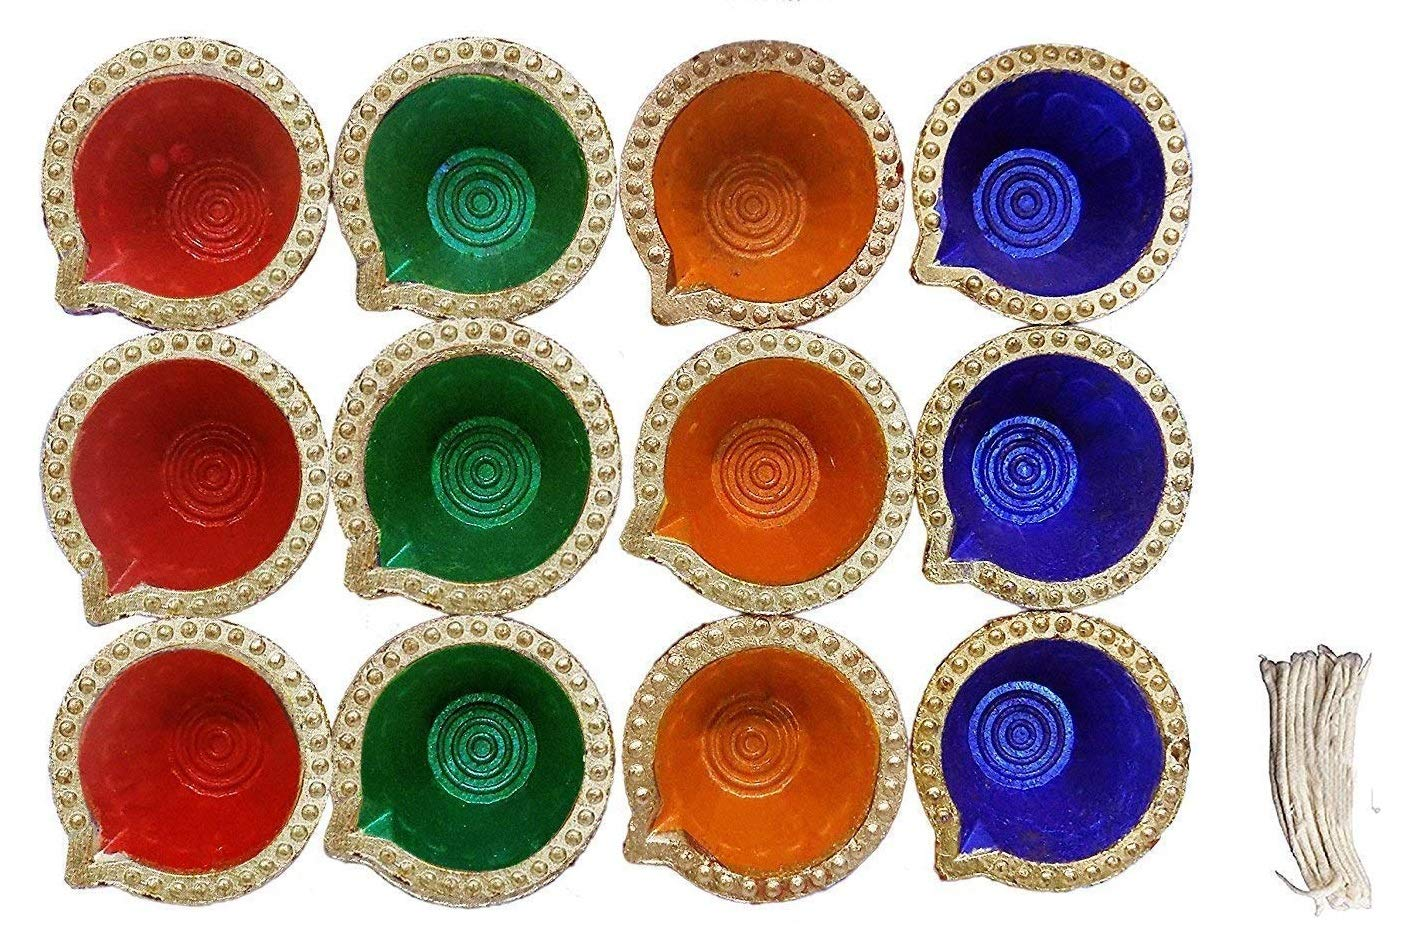 12 Pc Set of Diwali Gift/Diwali Decorations Diwali Diya. (Assorted Colors) Handmade Natural Earthen Oil Lamp/Welcome Traditional Diyas with Cotton Wicks Batti. Diwali Earthen Lamp. Oil lamp